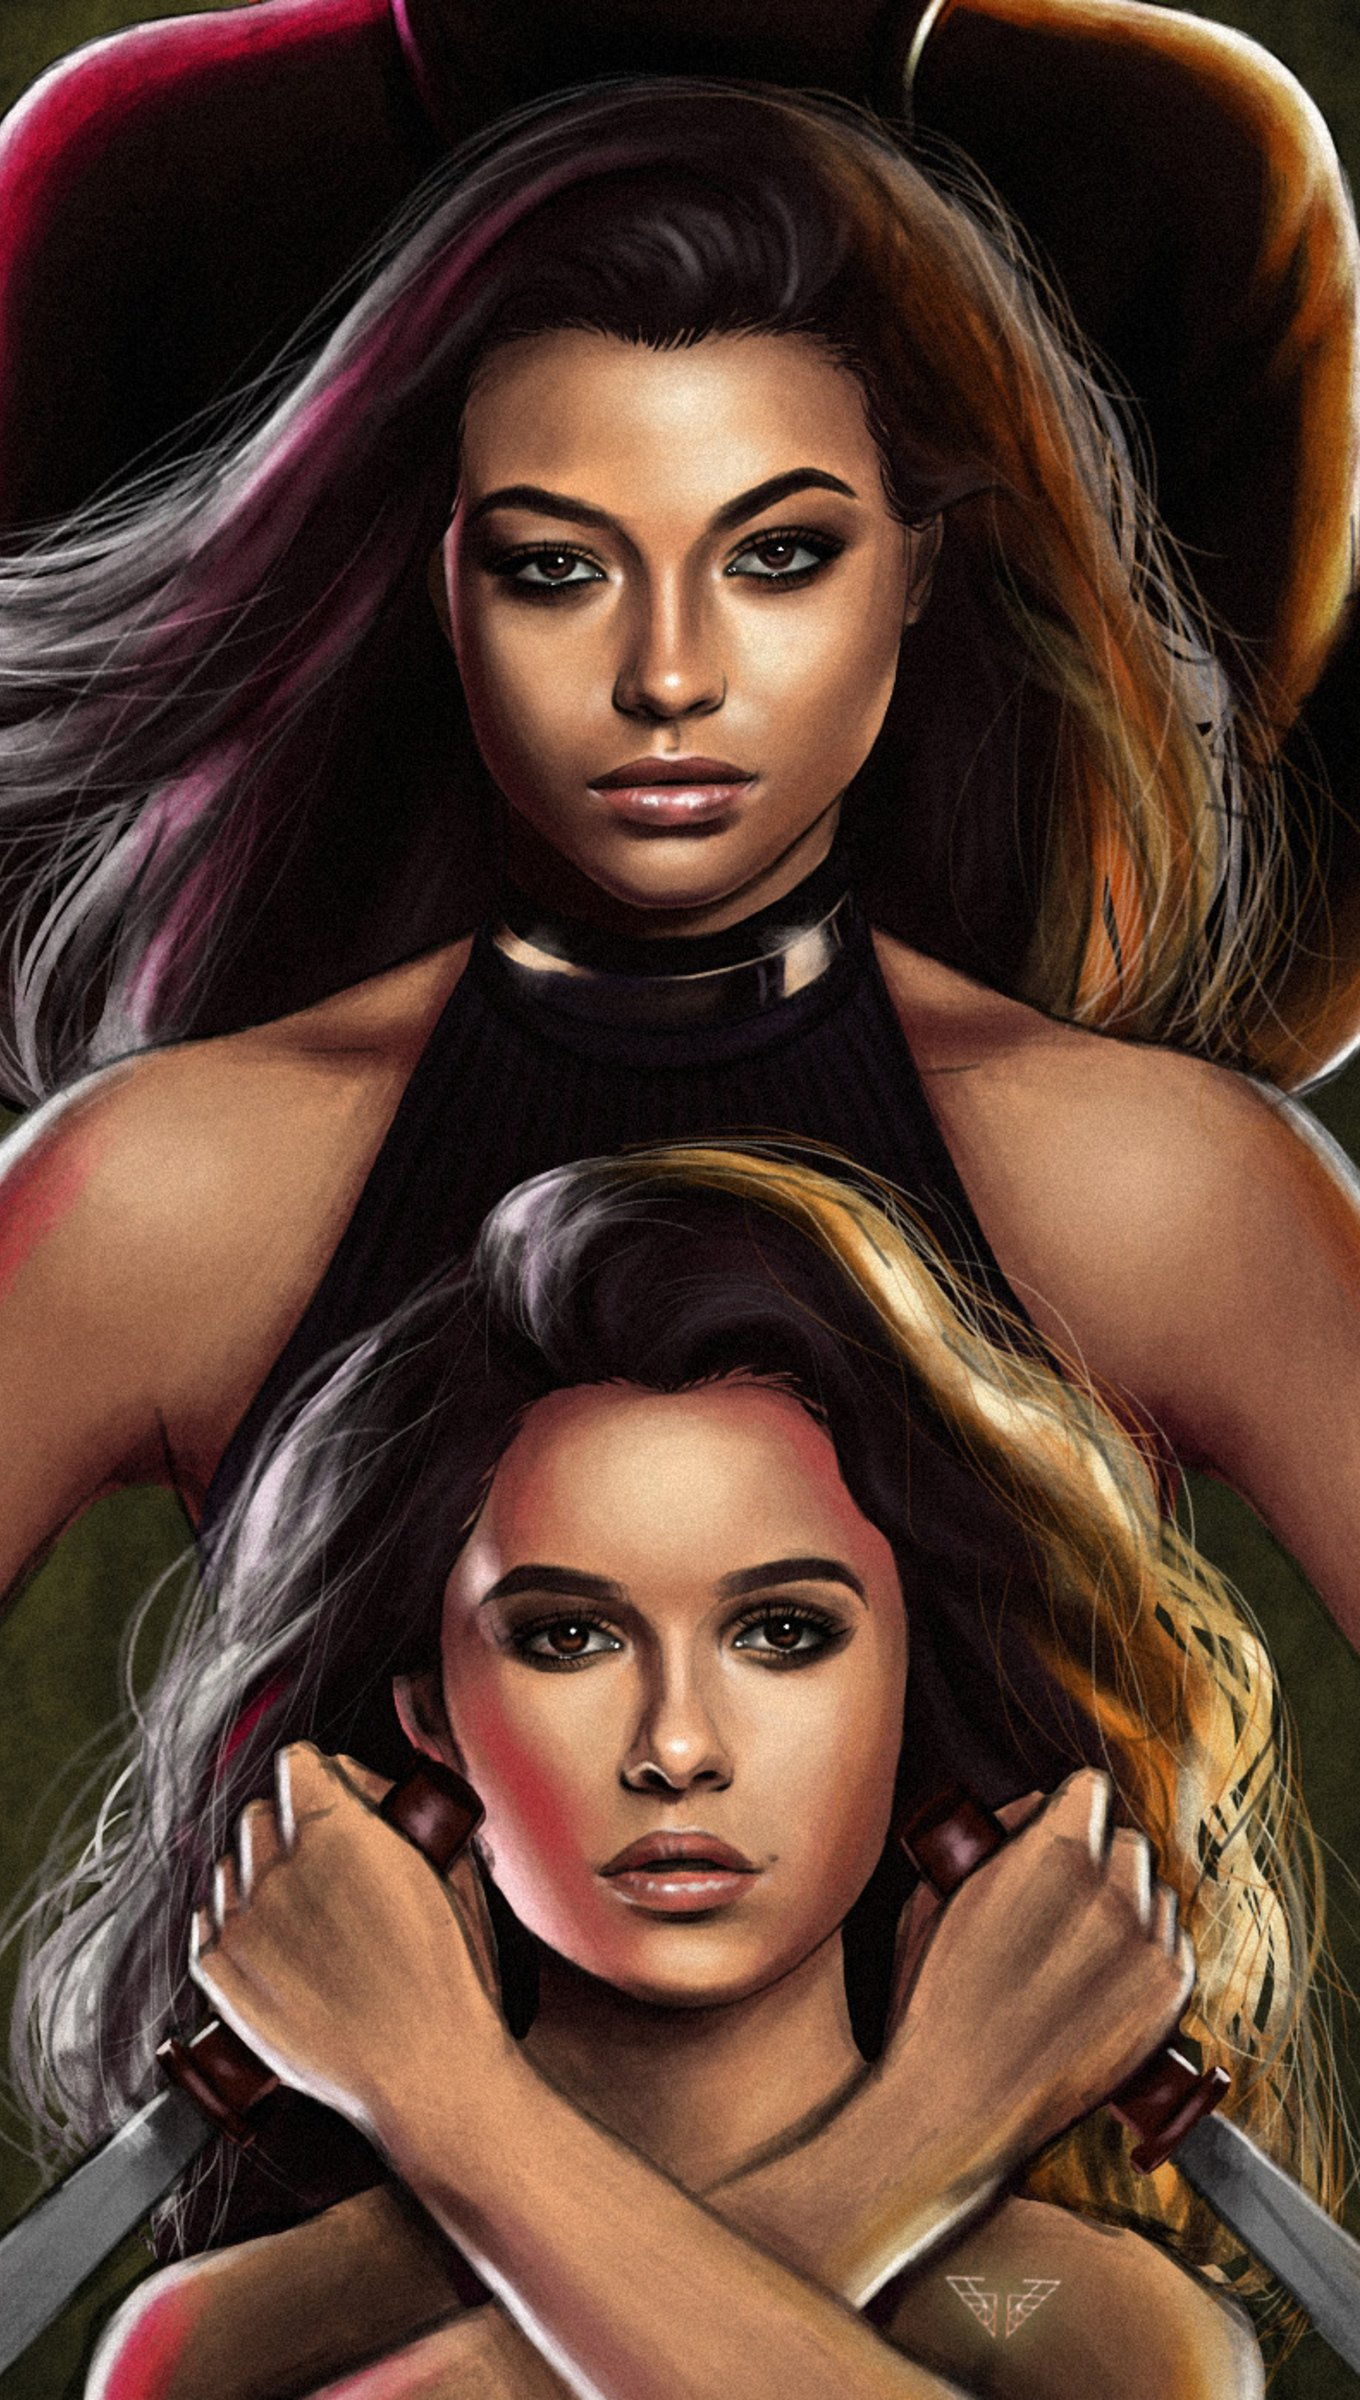 Wallpaper Charlie's Angels Vertical